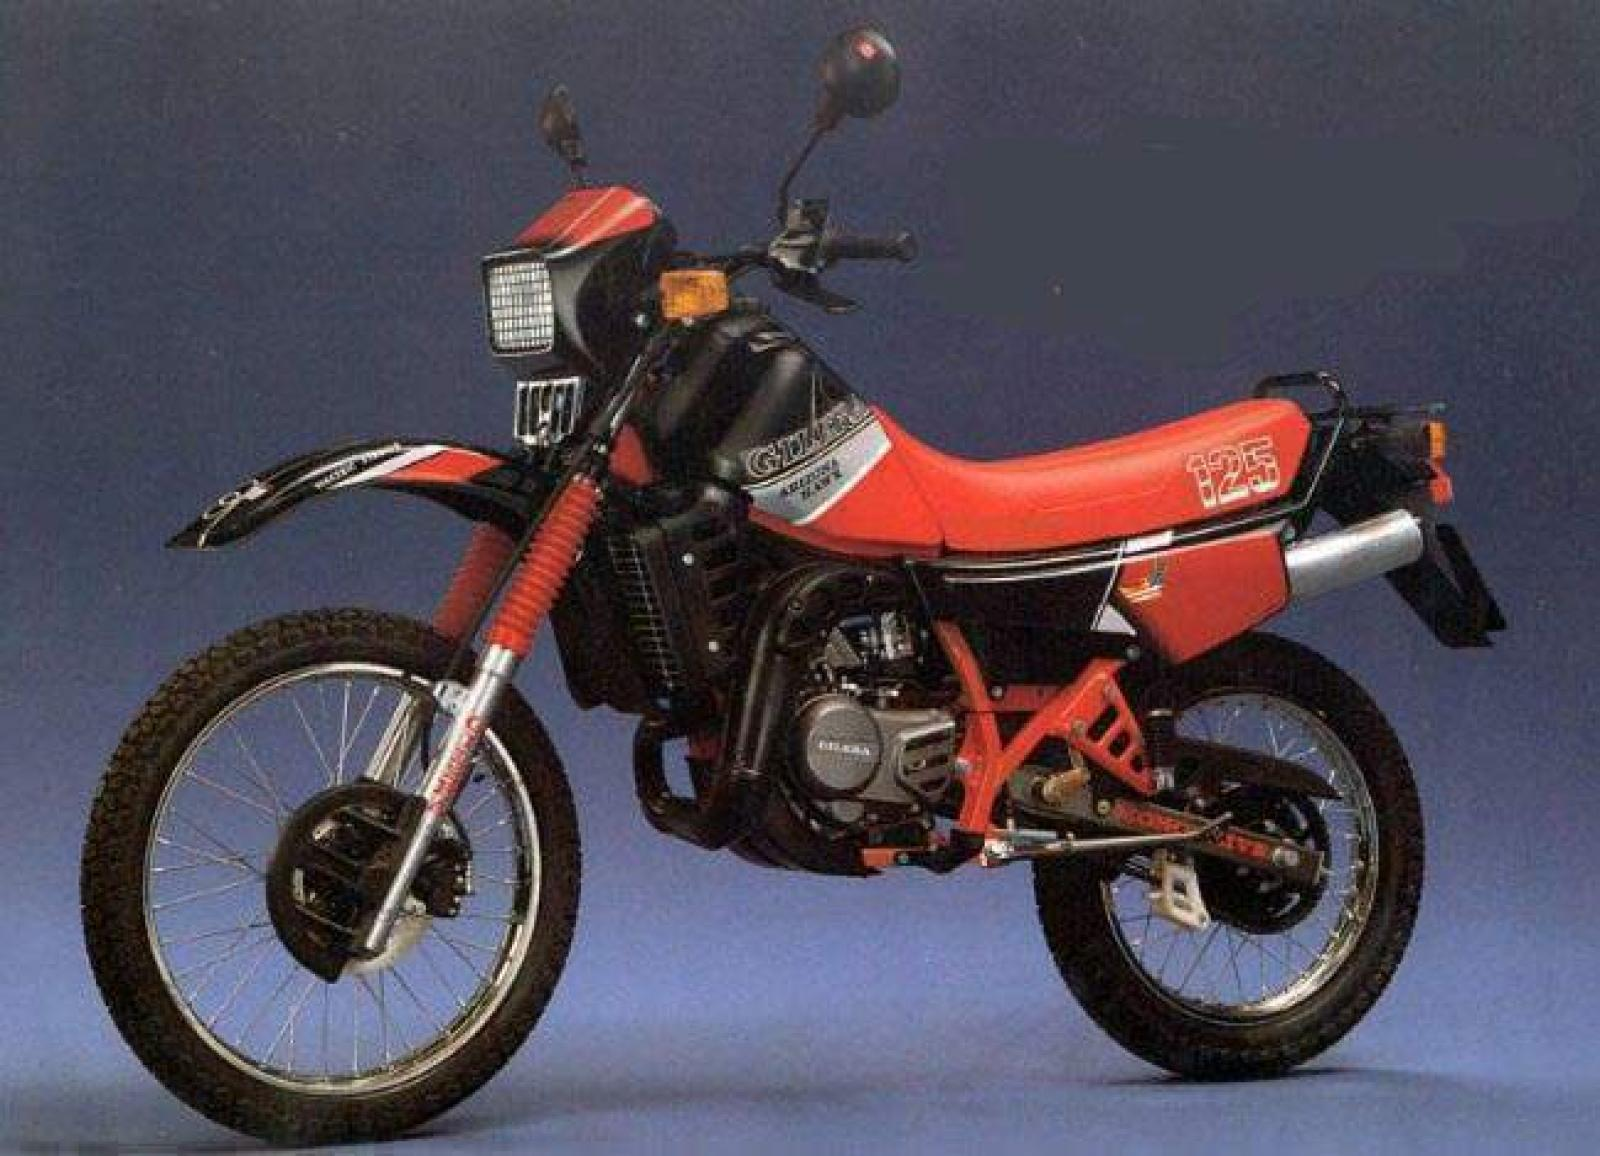 Gilera RX 125 Arizona 1985 images #73258